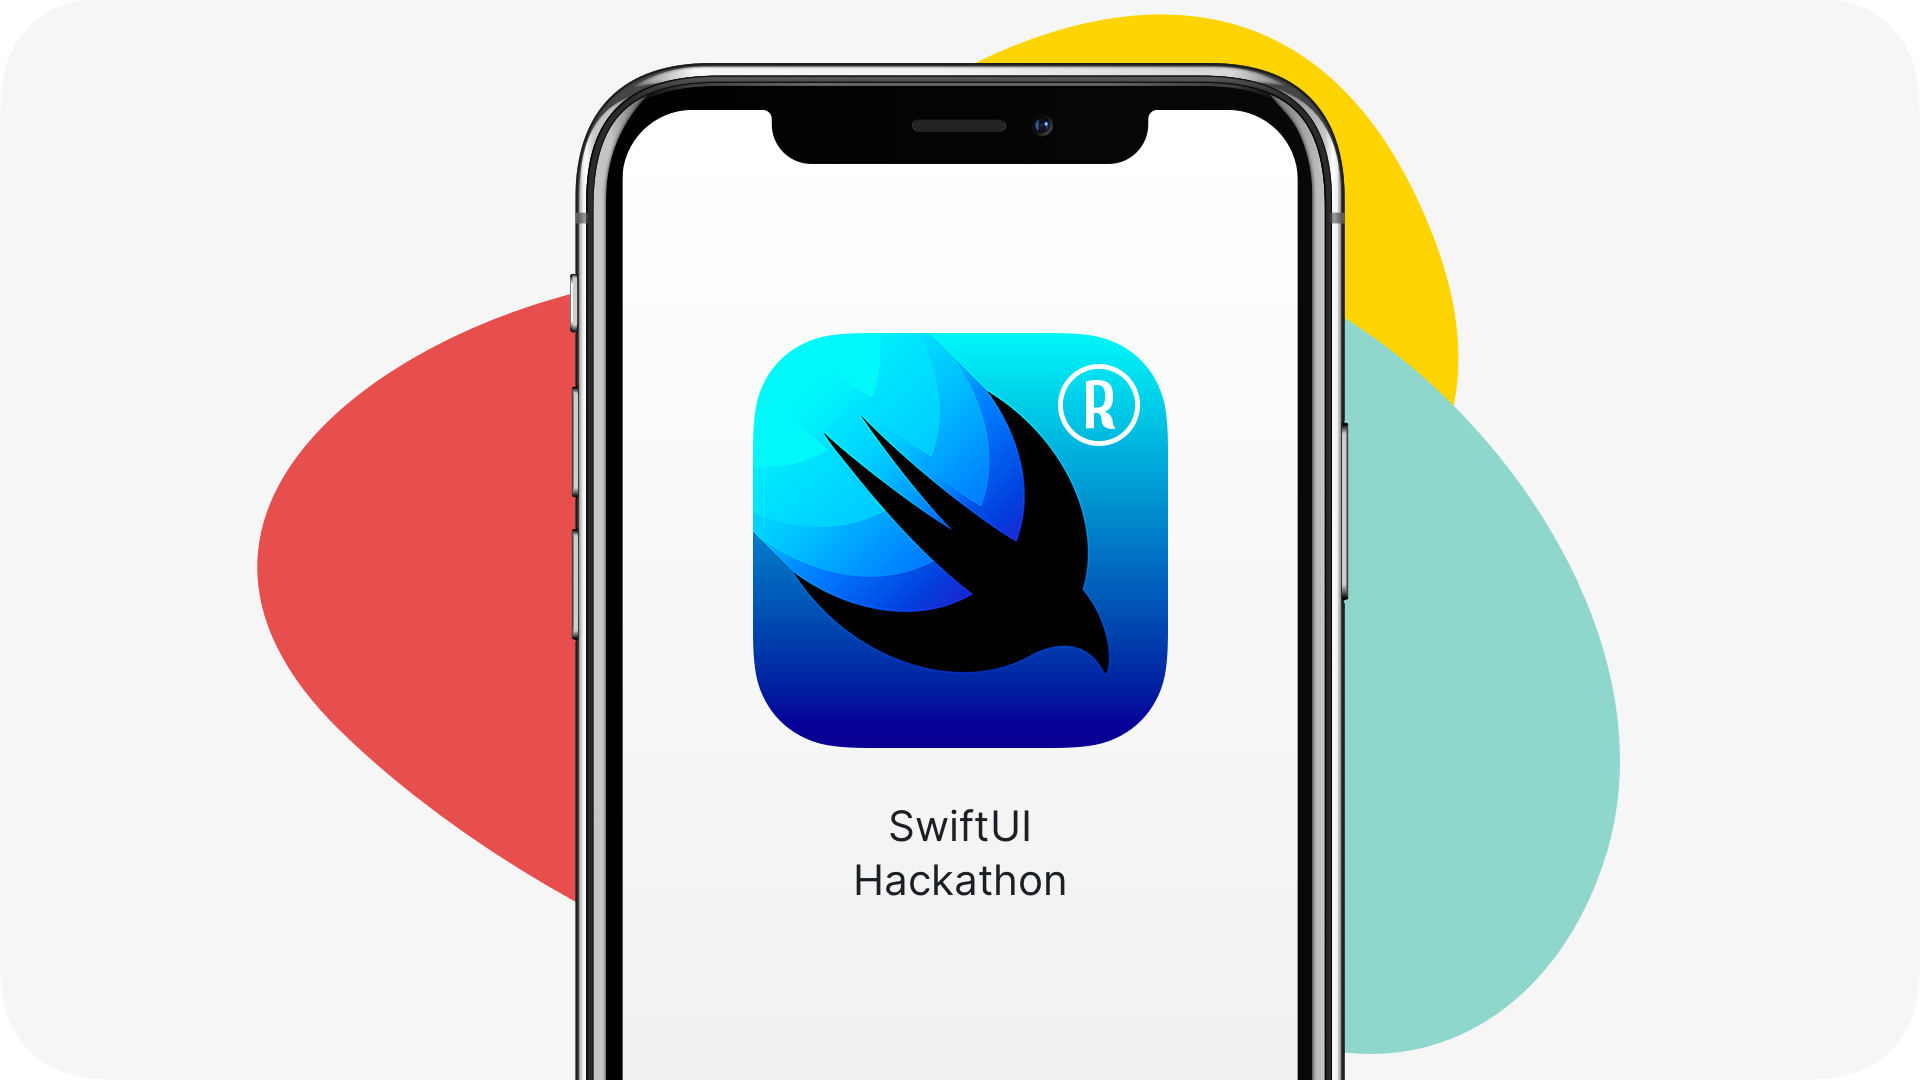 SwiftUI Hackathon - @RosberryApps - Medium